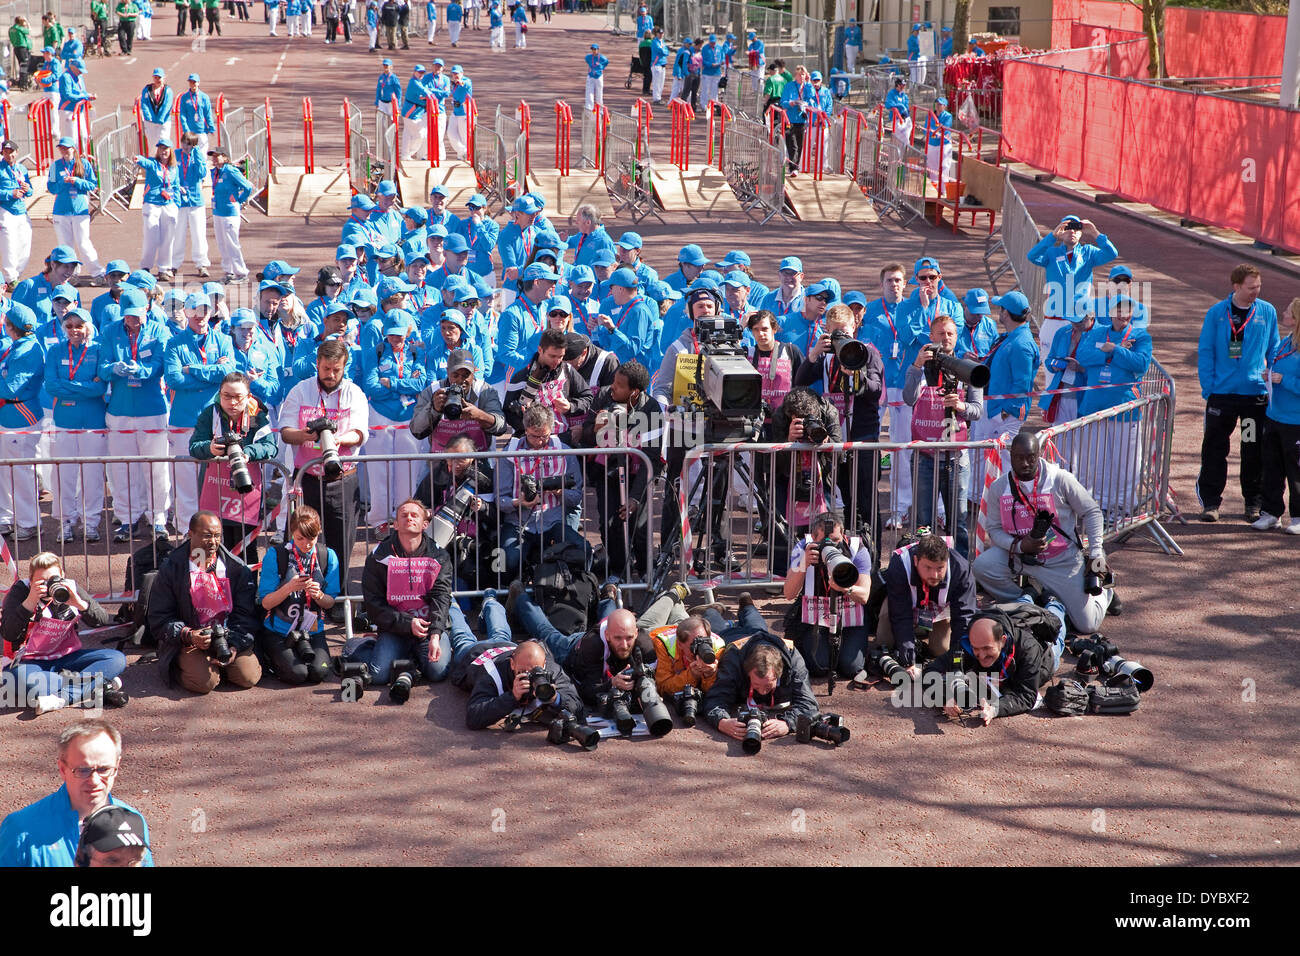 London,UK,13th April 2014,The Press waiting for the winner of the London Marathon 201 Credit: Keith Larby/Alamy Live News - Stock Image